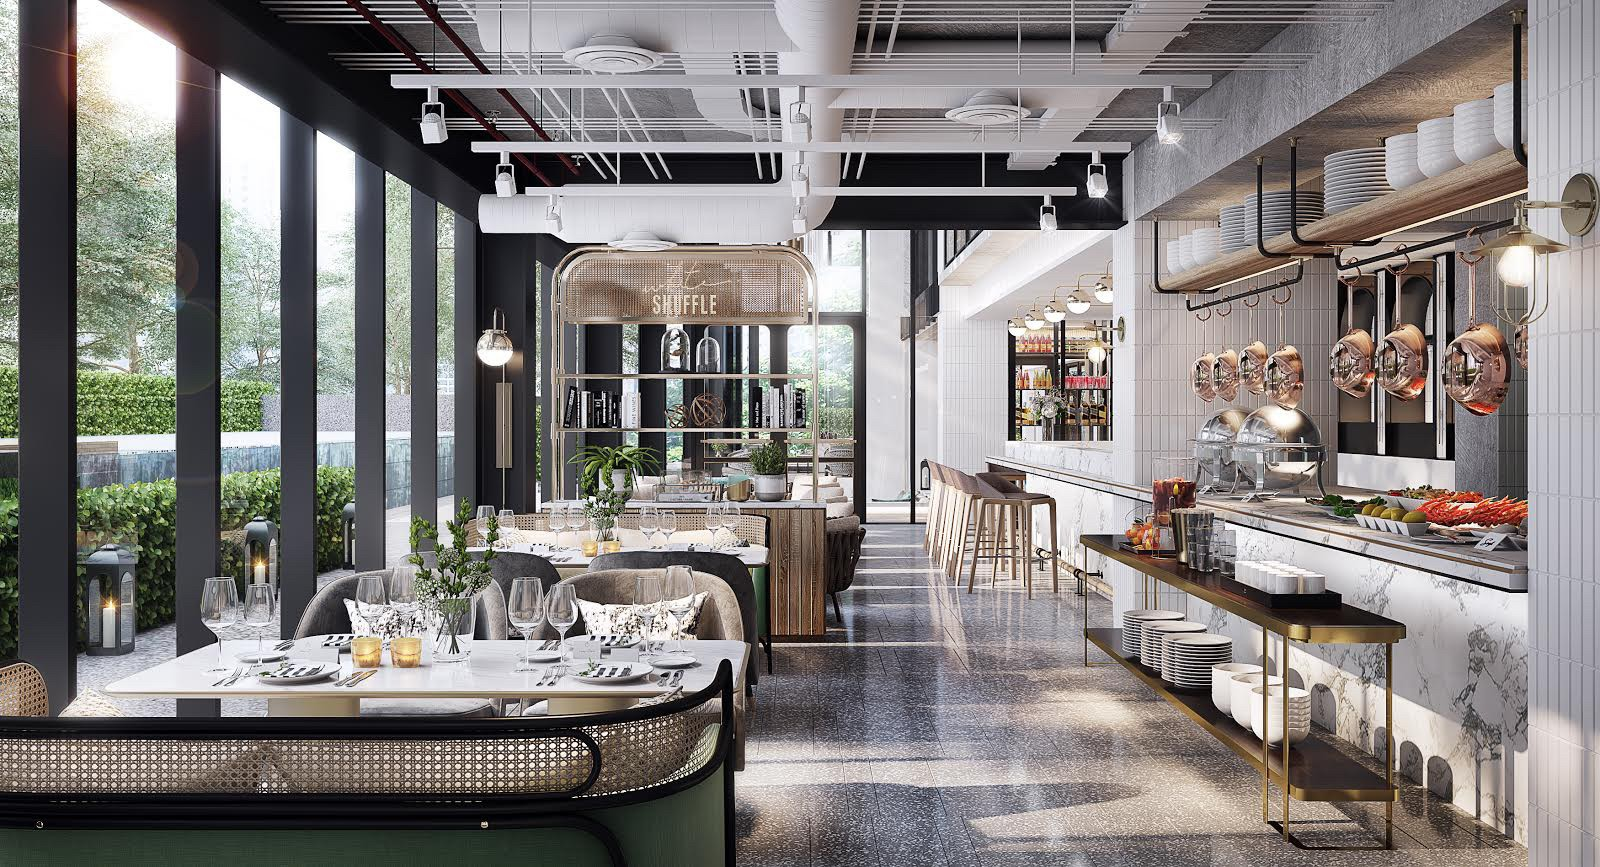 7 Superb New Restaurants to Visit in March